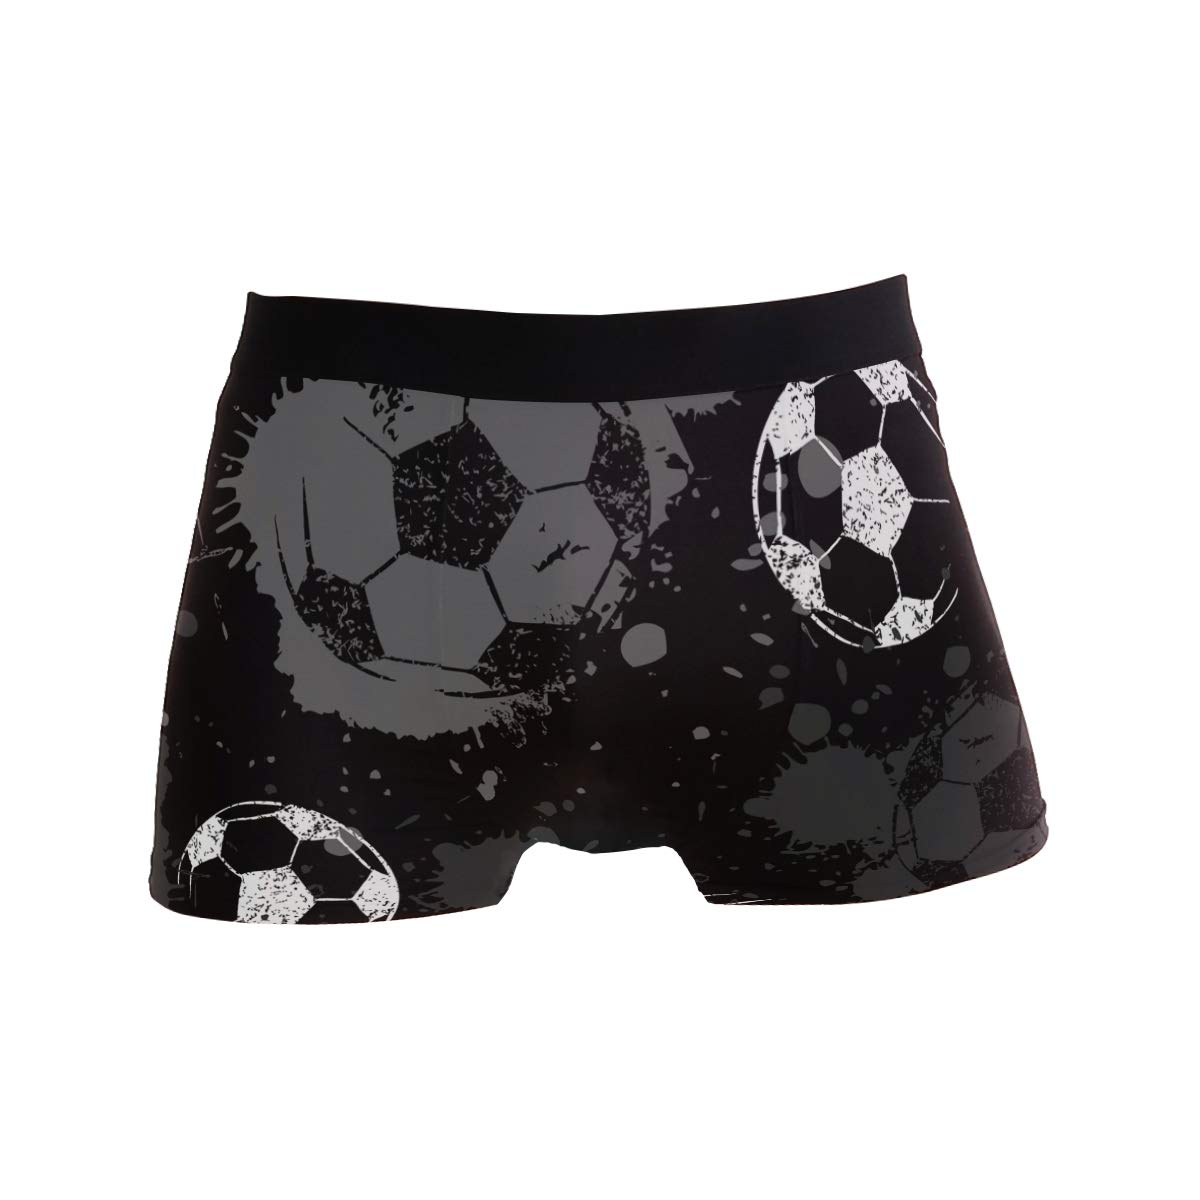 Jereee Black and White Football Pattern Mens Underwear Soft Polyester Boxer Brief for Men Adult Teen Children Kids S